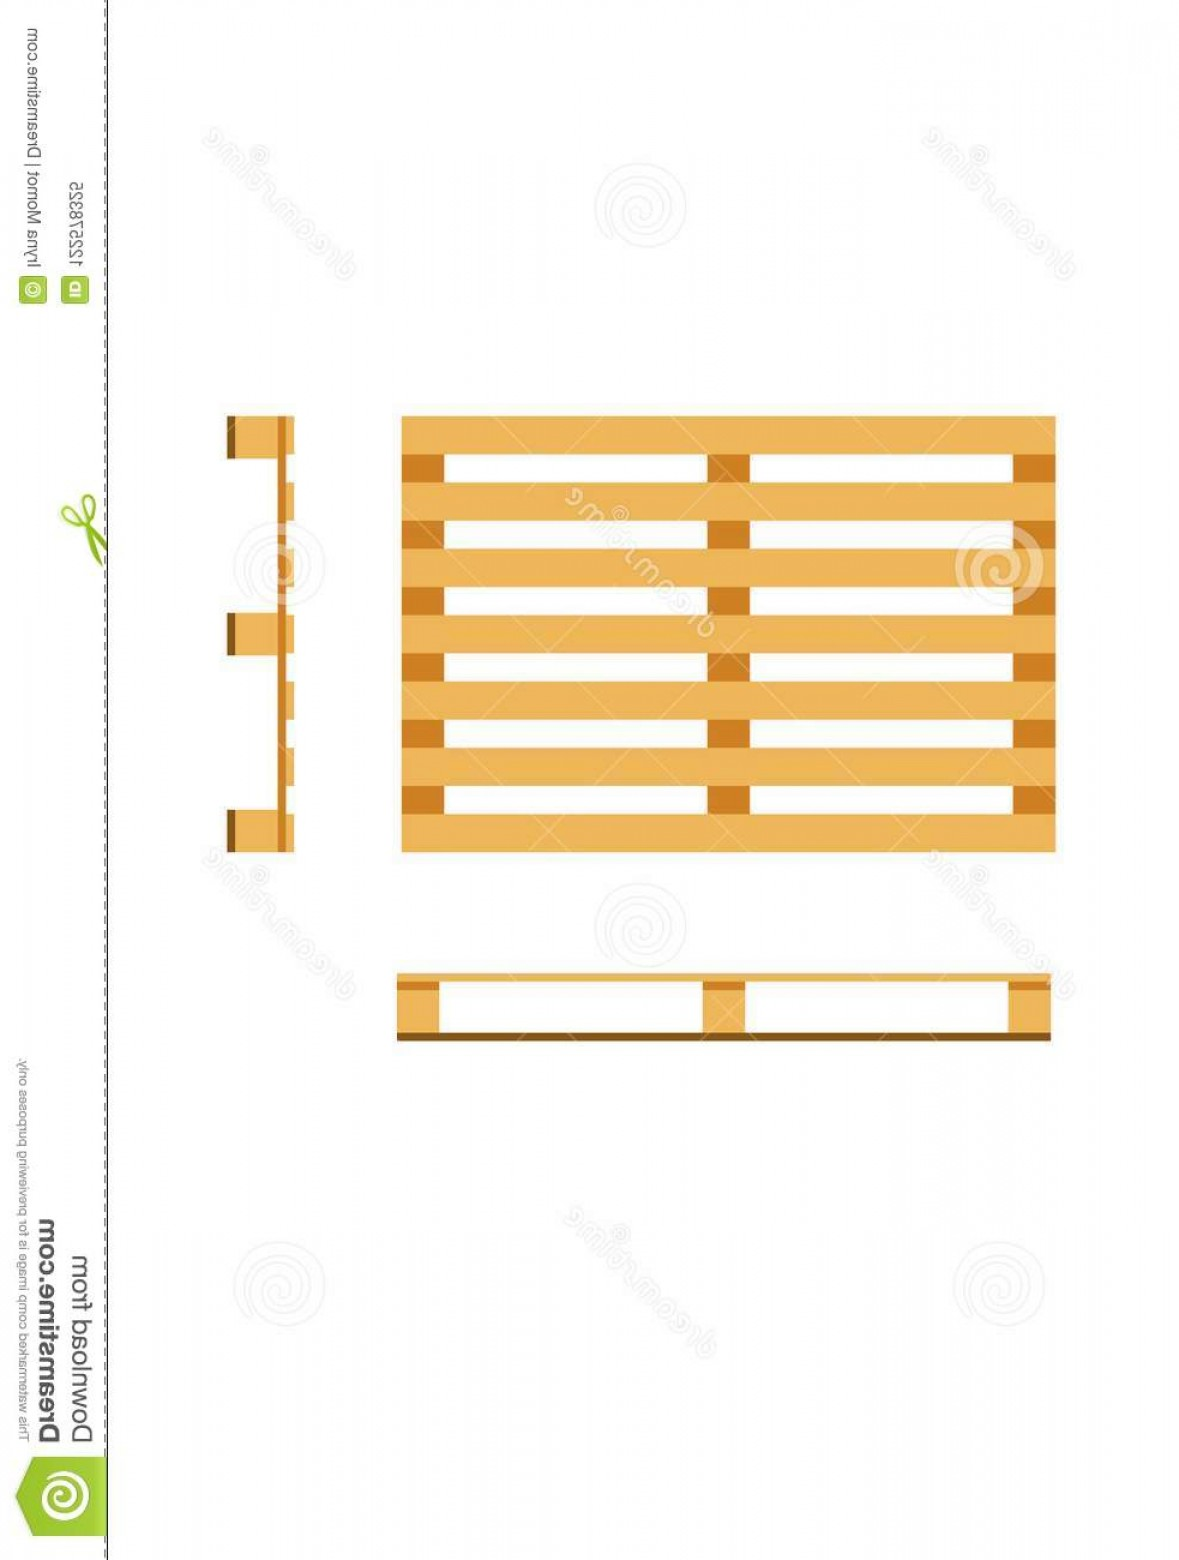 Pallet Vector Graphic: Vector Wooden Pallet Vector Wooden Pallet Drawing Draft Industry Image